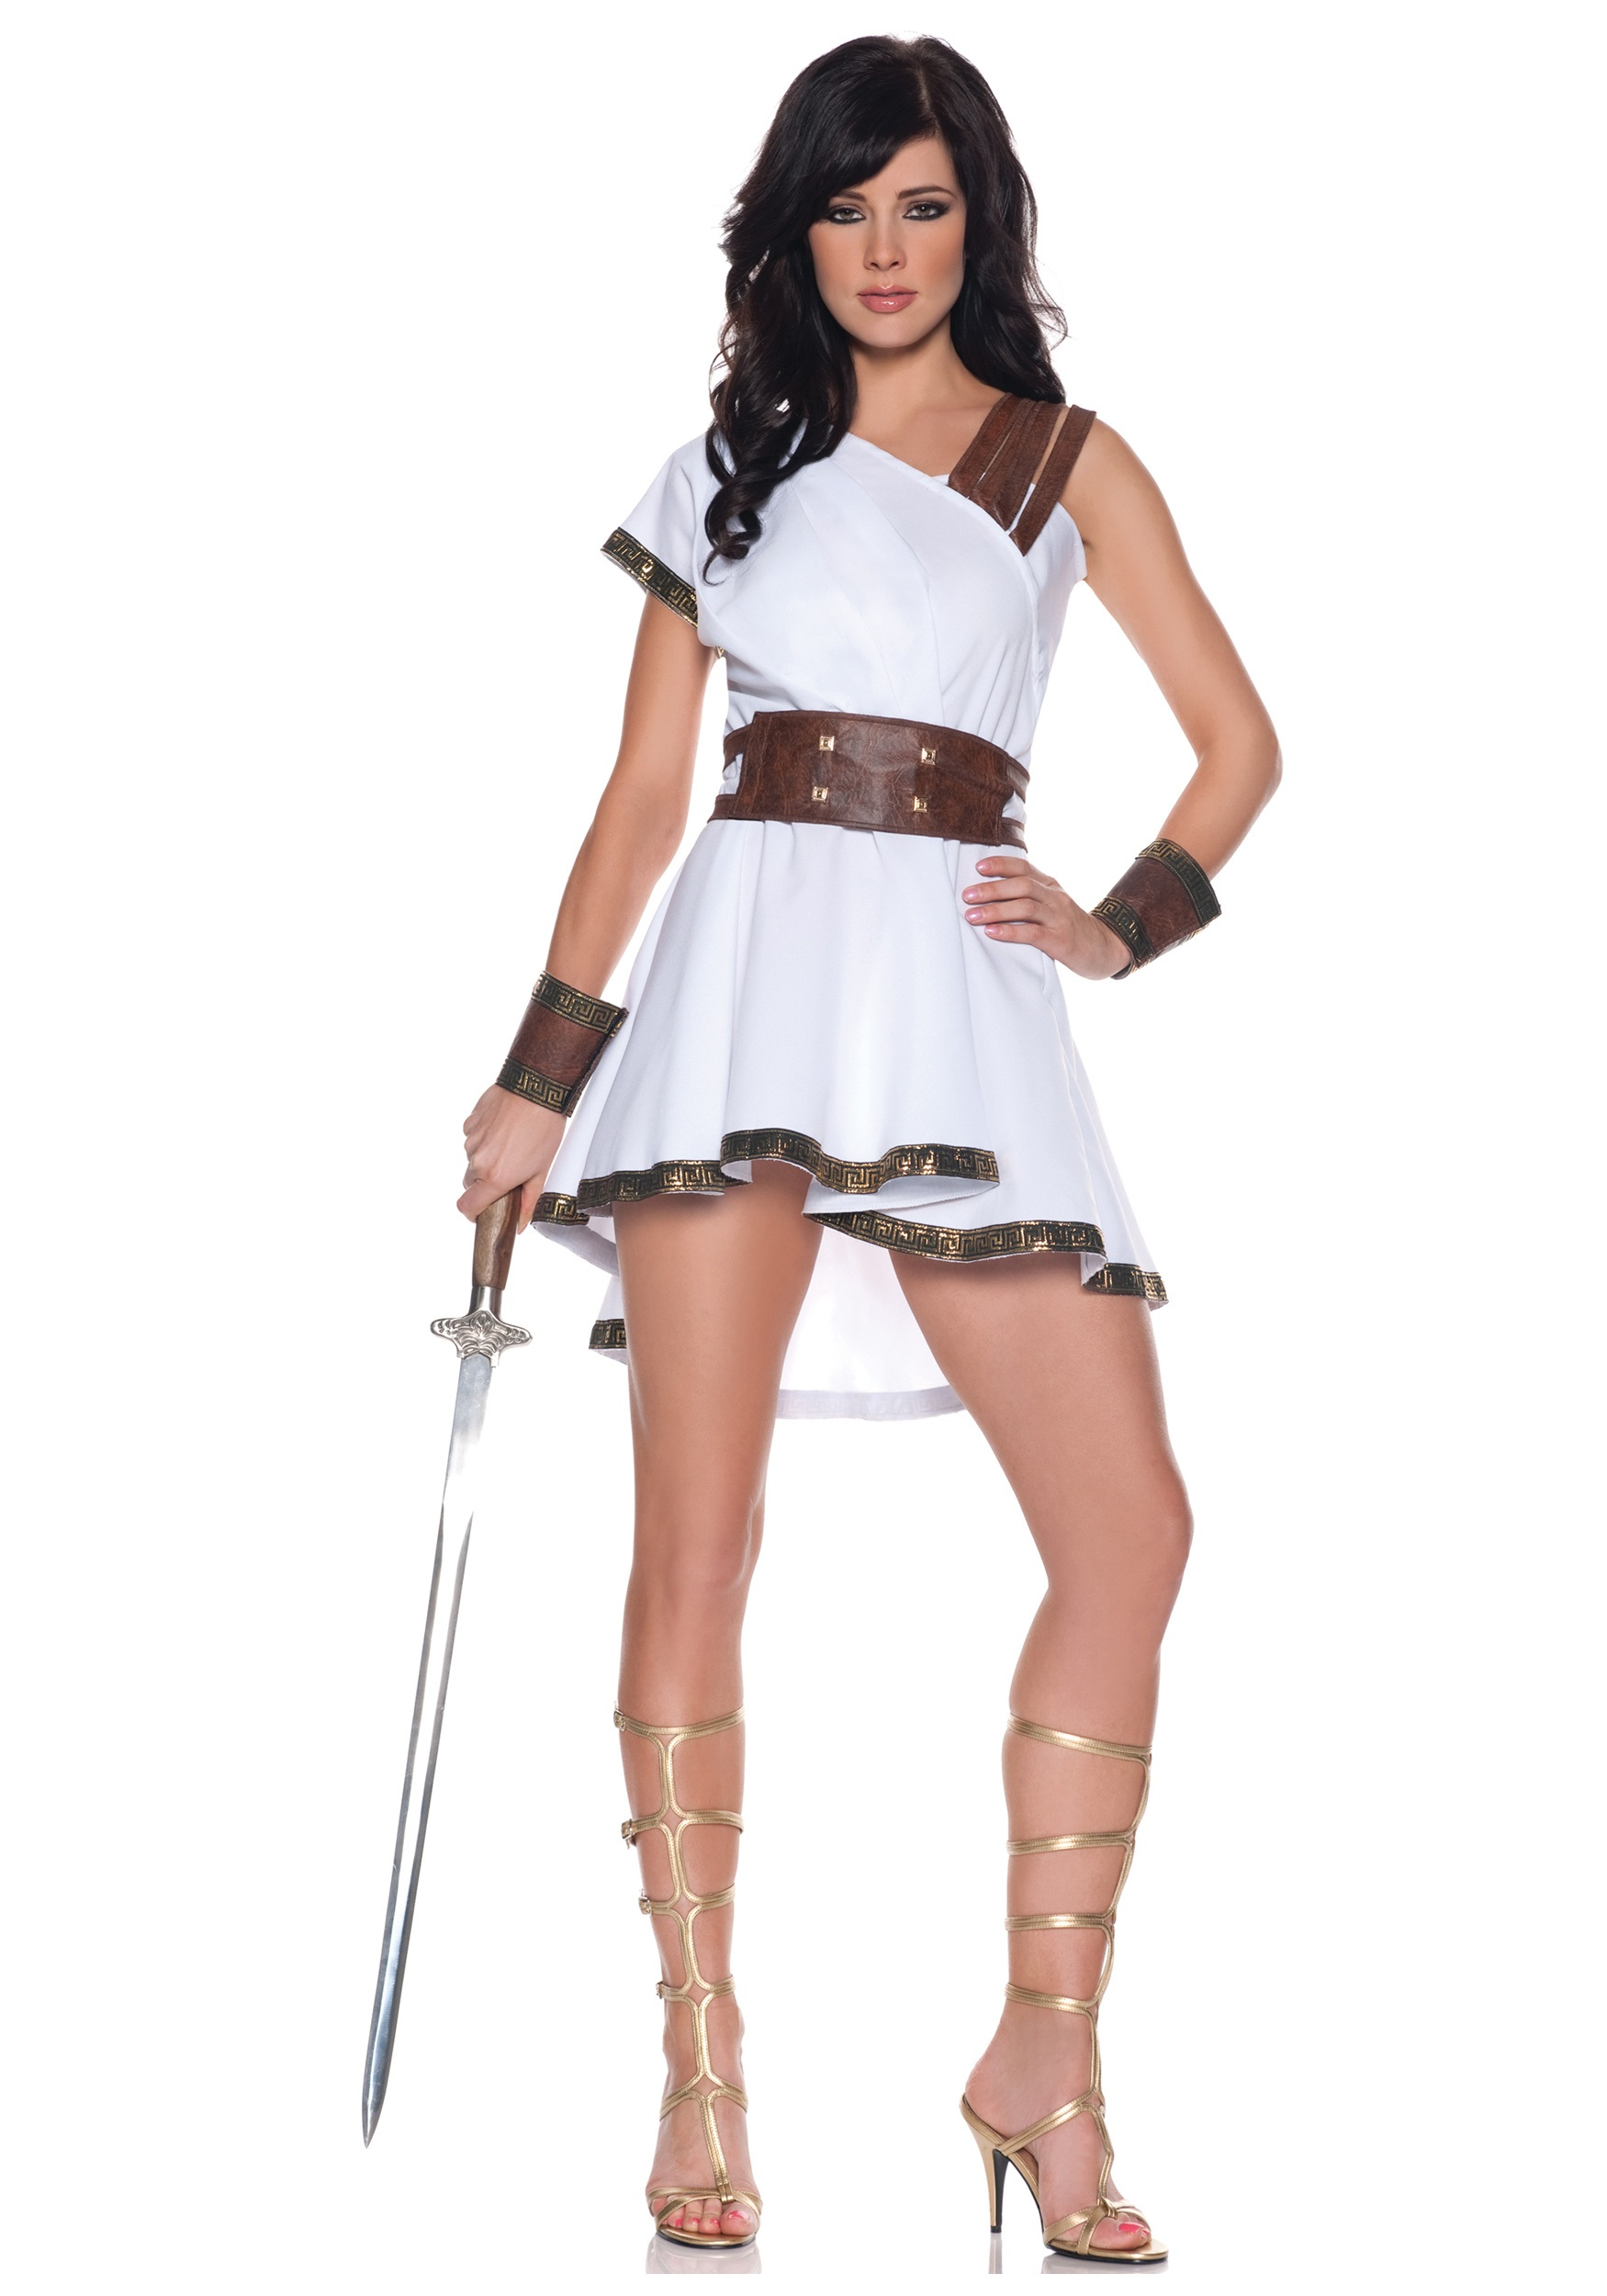 2011 halloween costume ideas: Cute Halloween Costume Ideas - Cute Halloween Costumes